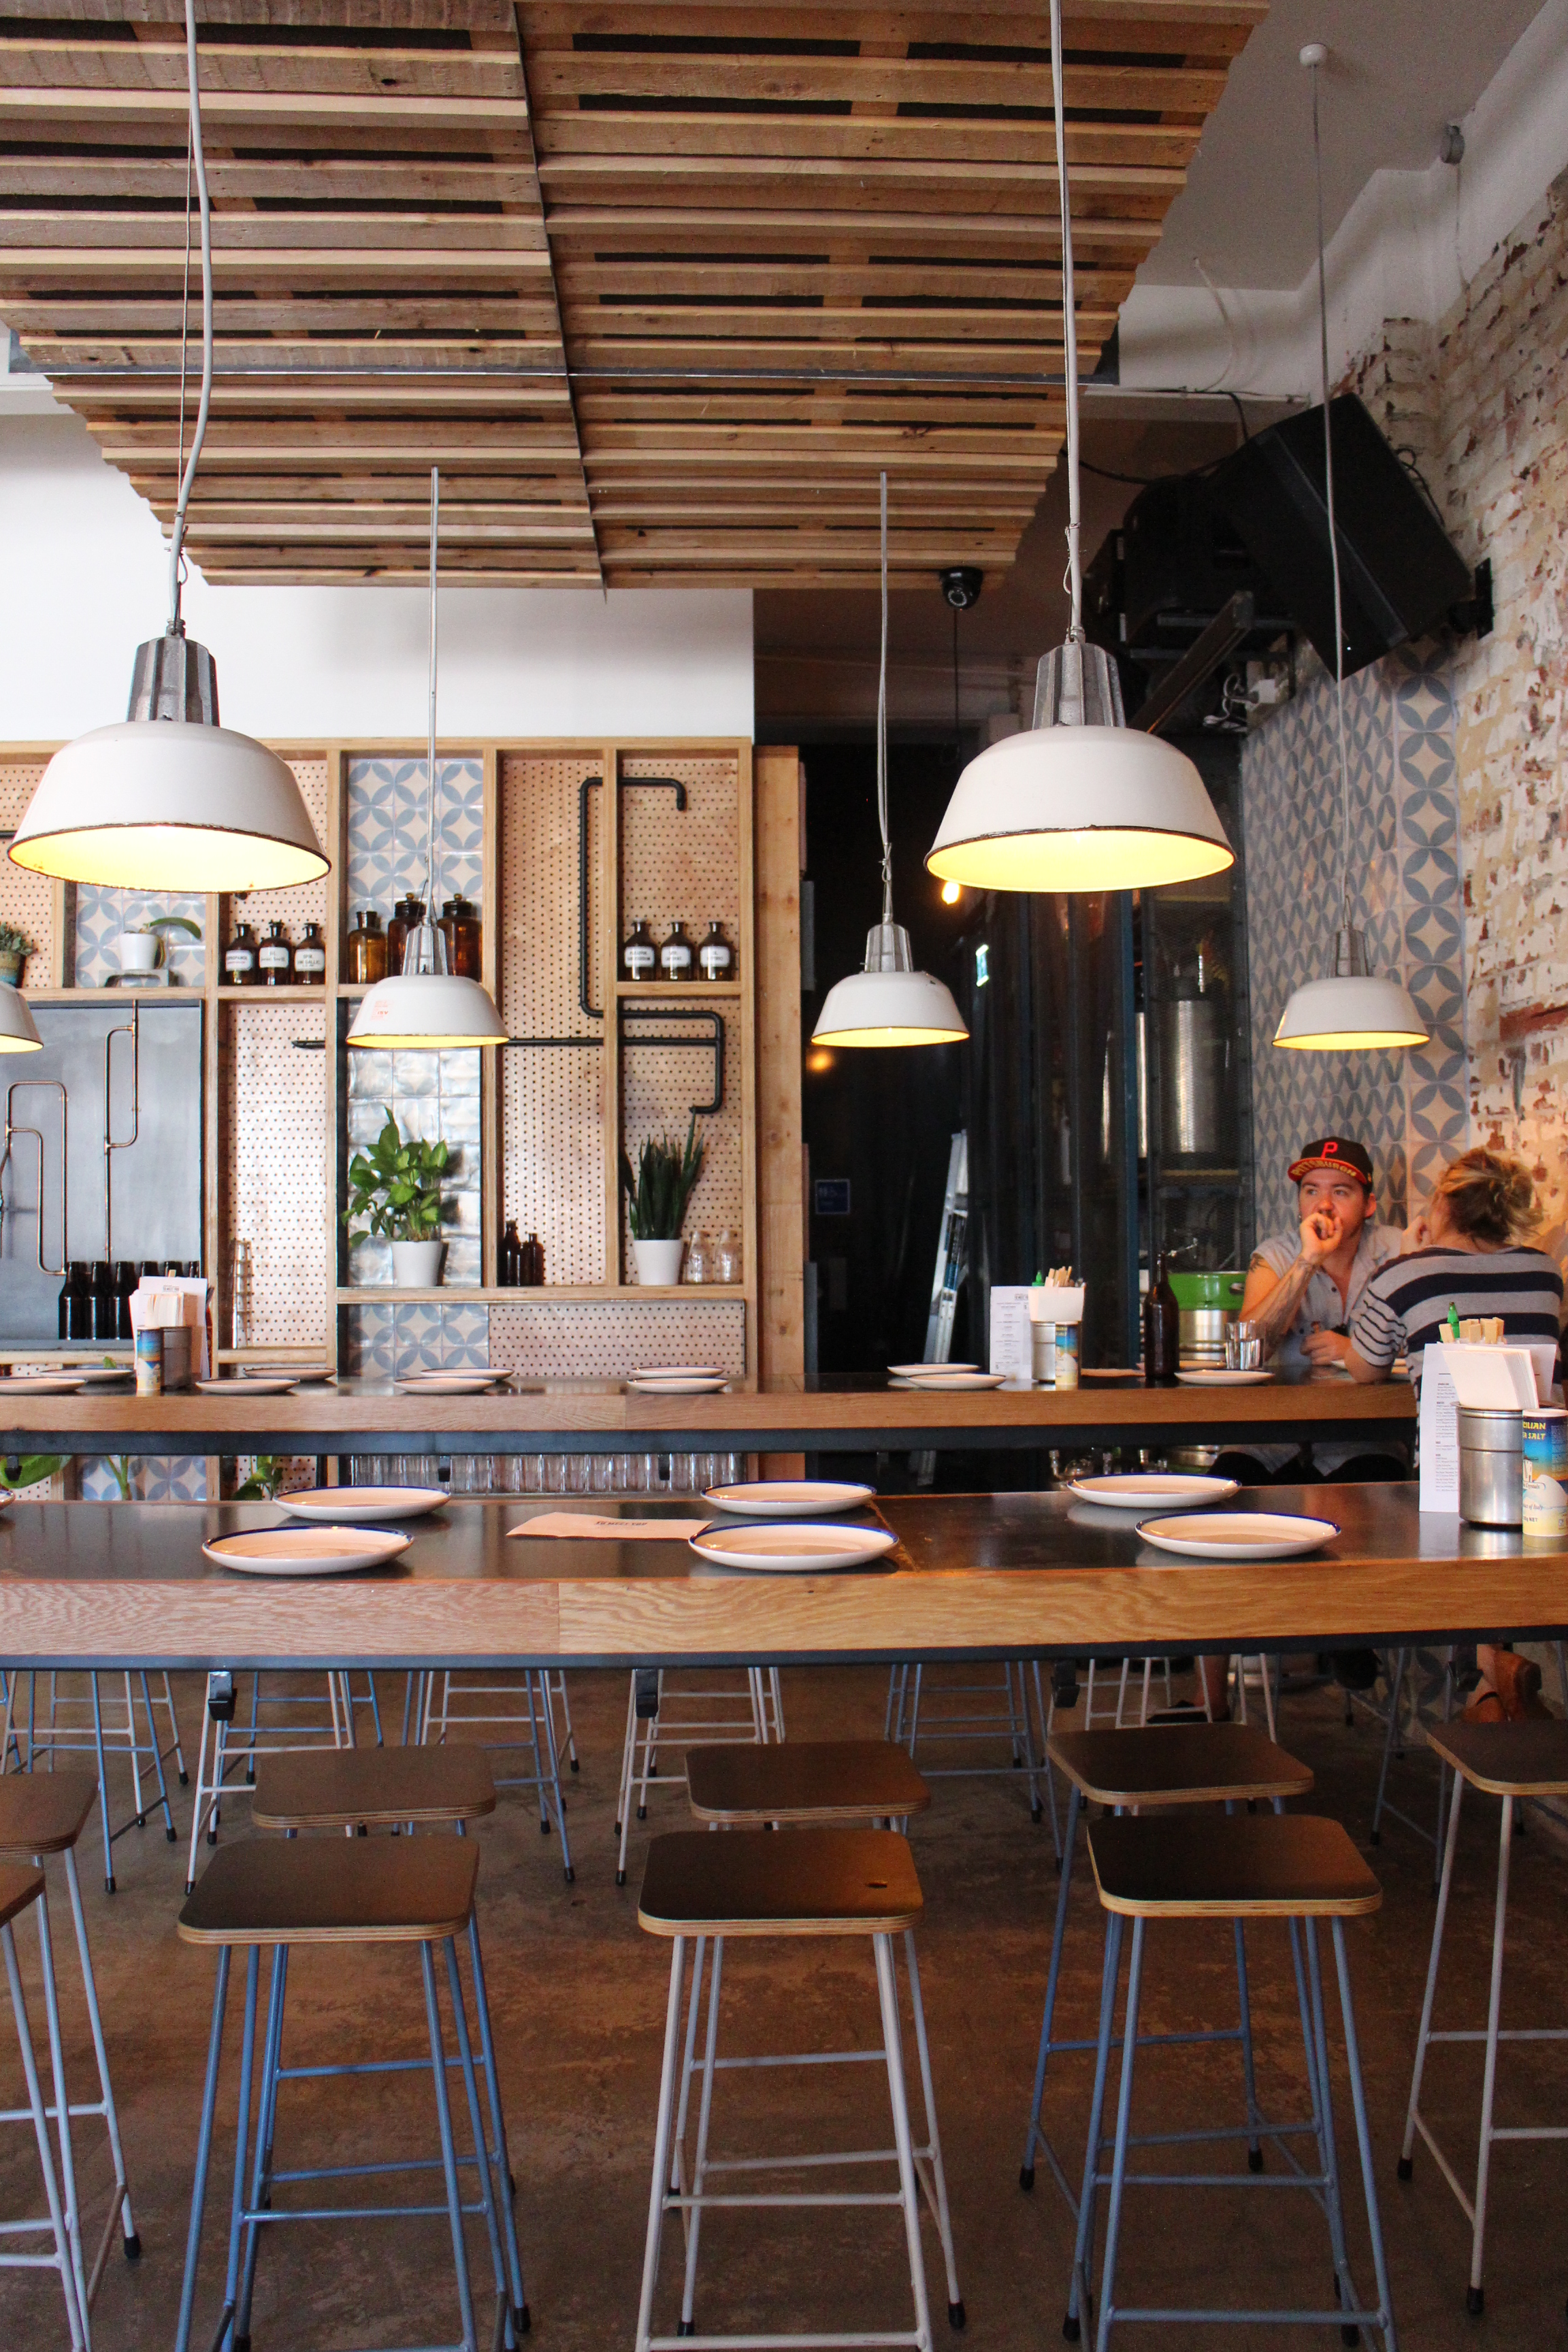 I love the fit out with its punches of cool blue, exposed brick, low hanging warehouse lights and pretty tiles.